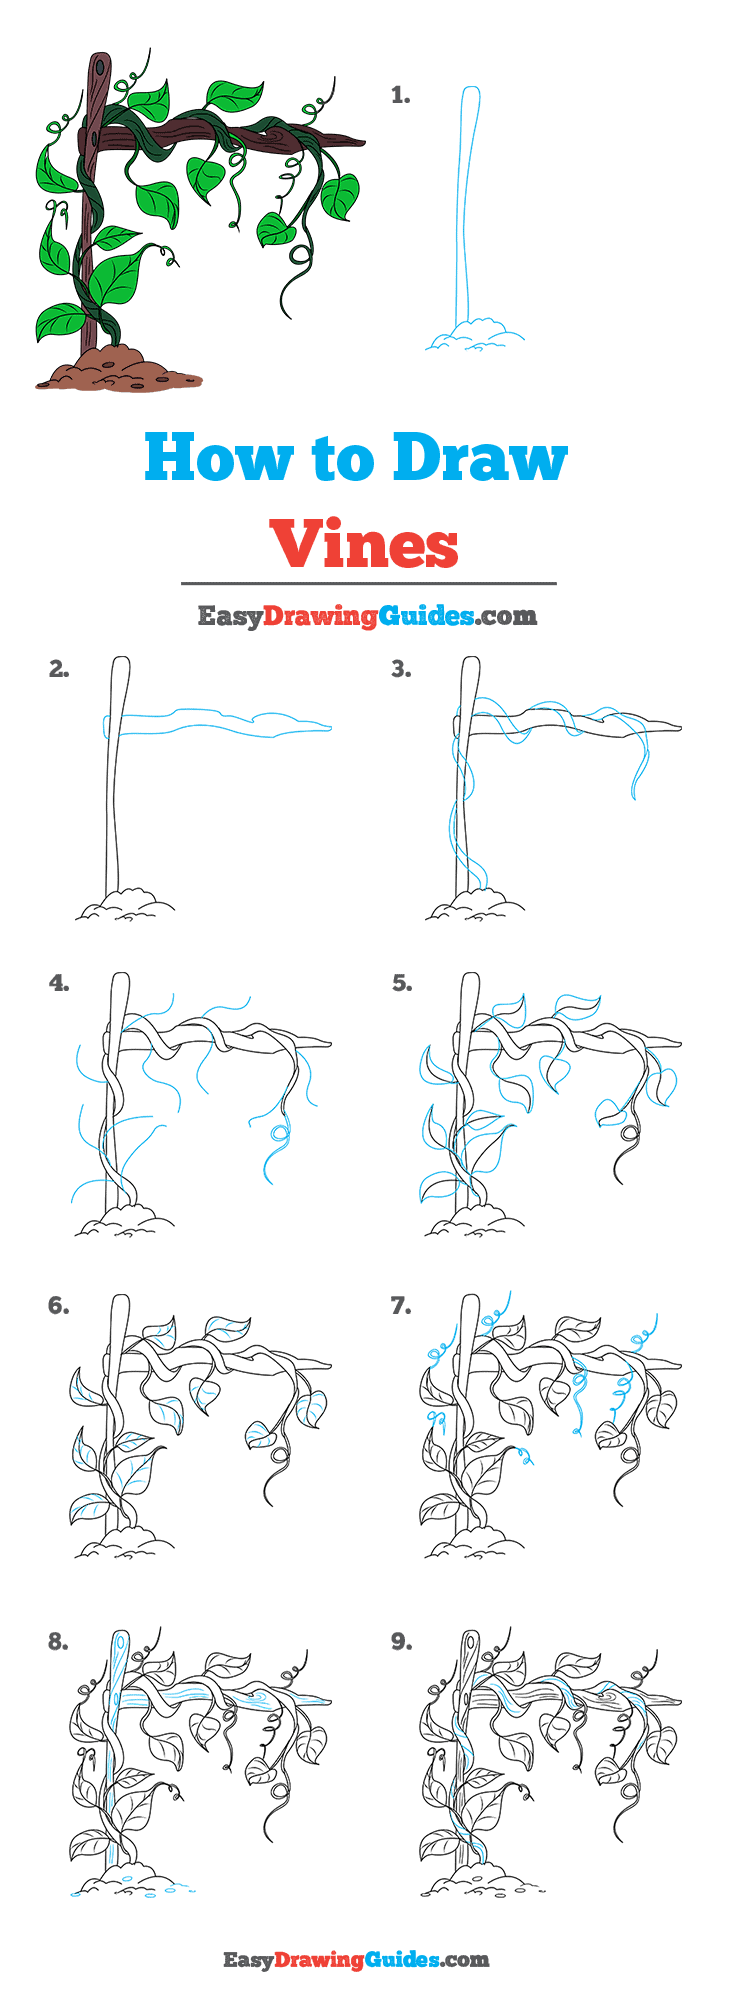 How to Draw Vines Step by Step Tutorial Image